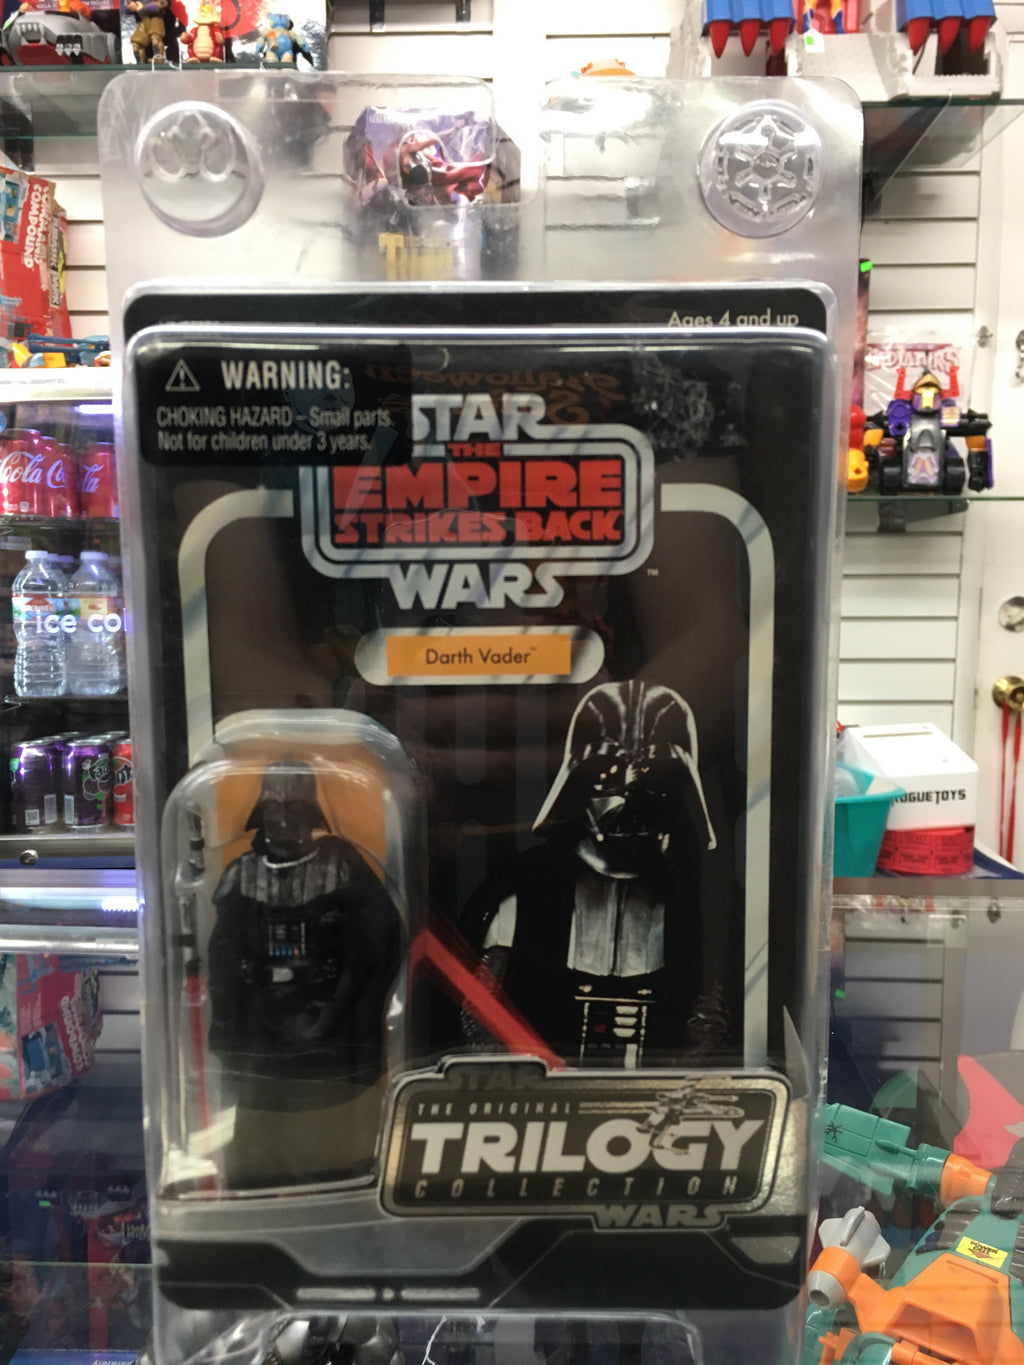 Star Wars The Original Trilogy Collection The Empire Strikes Back Darth Vader